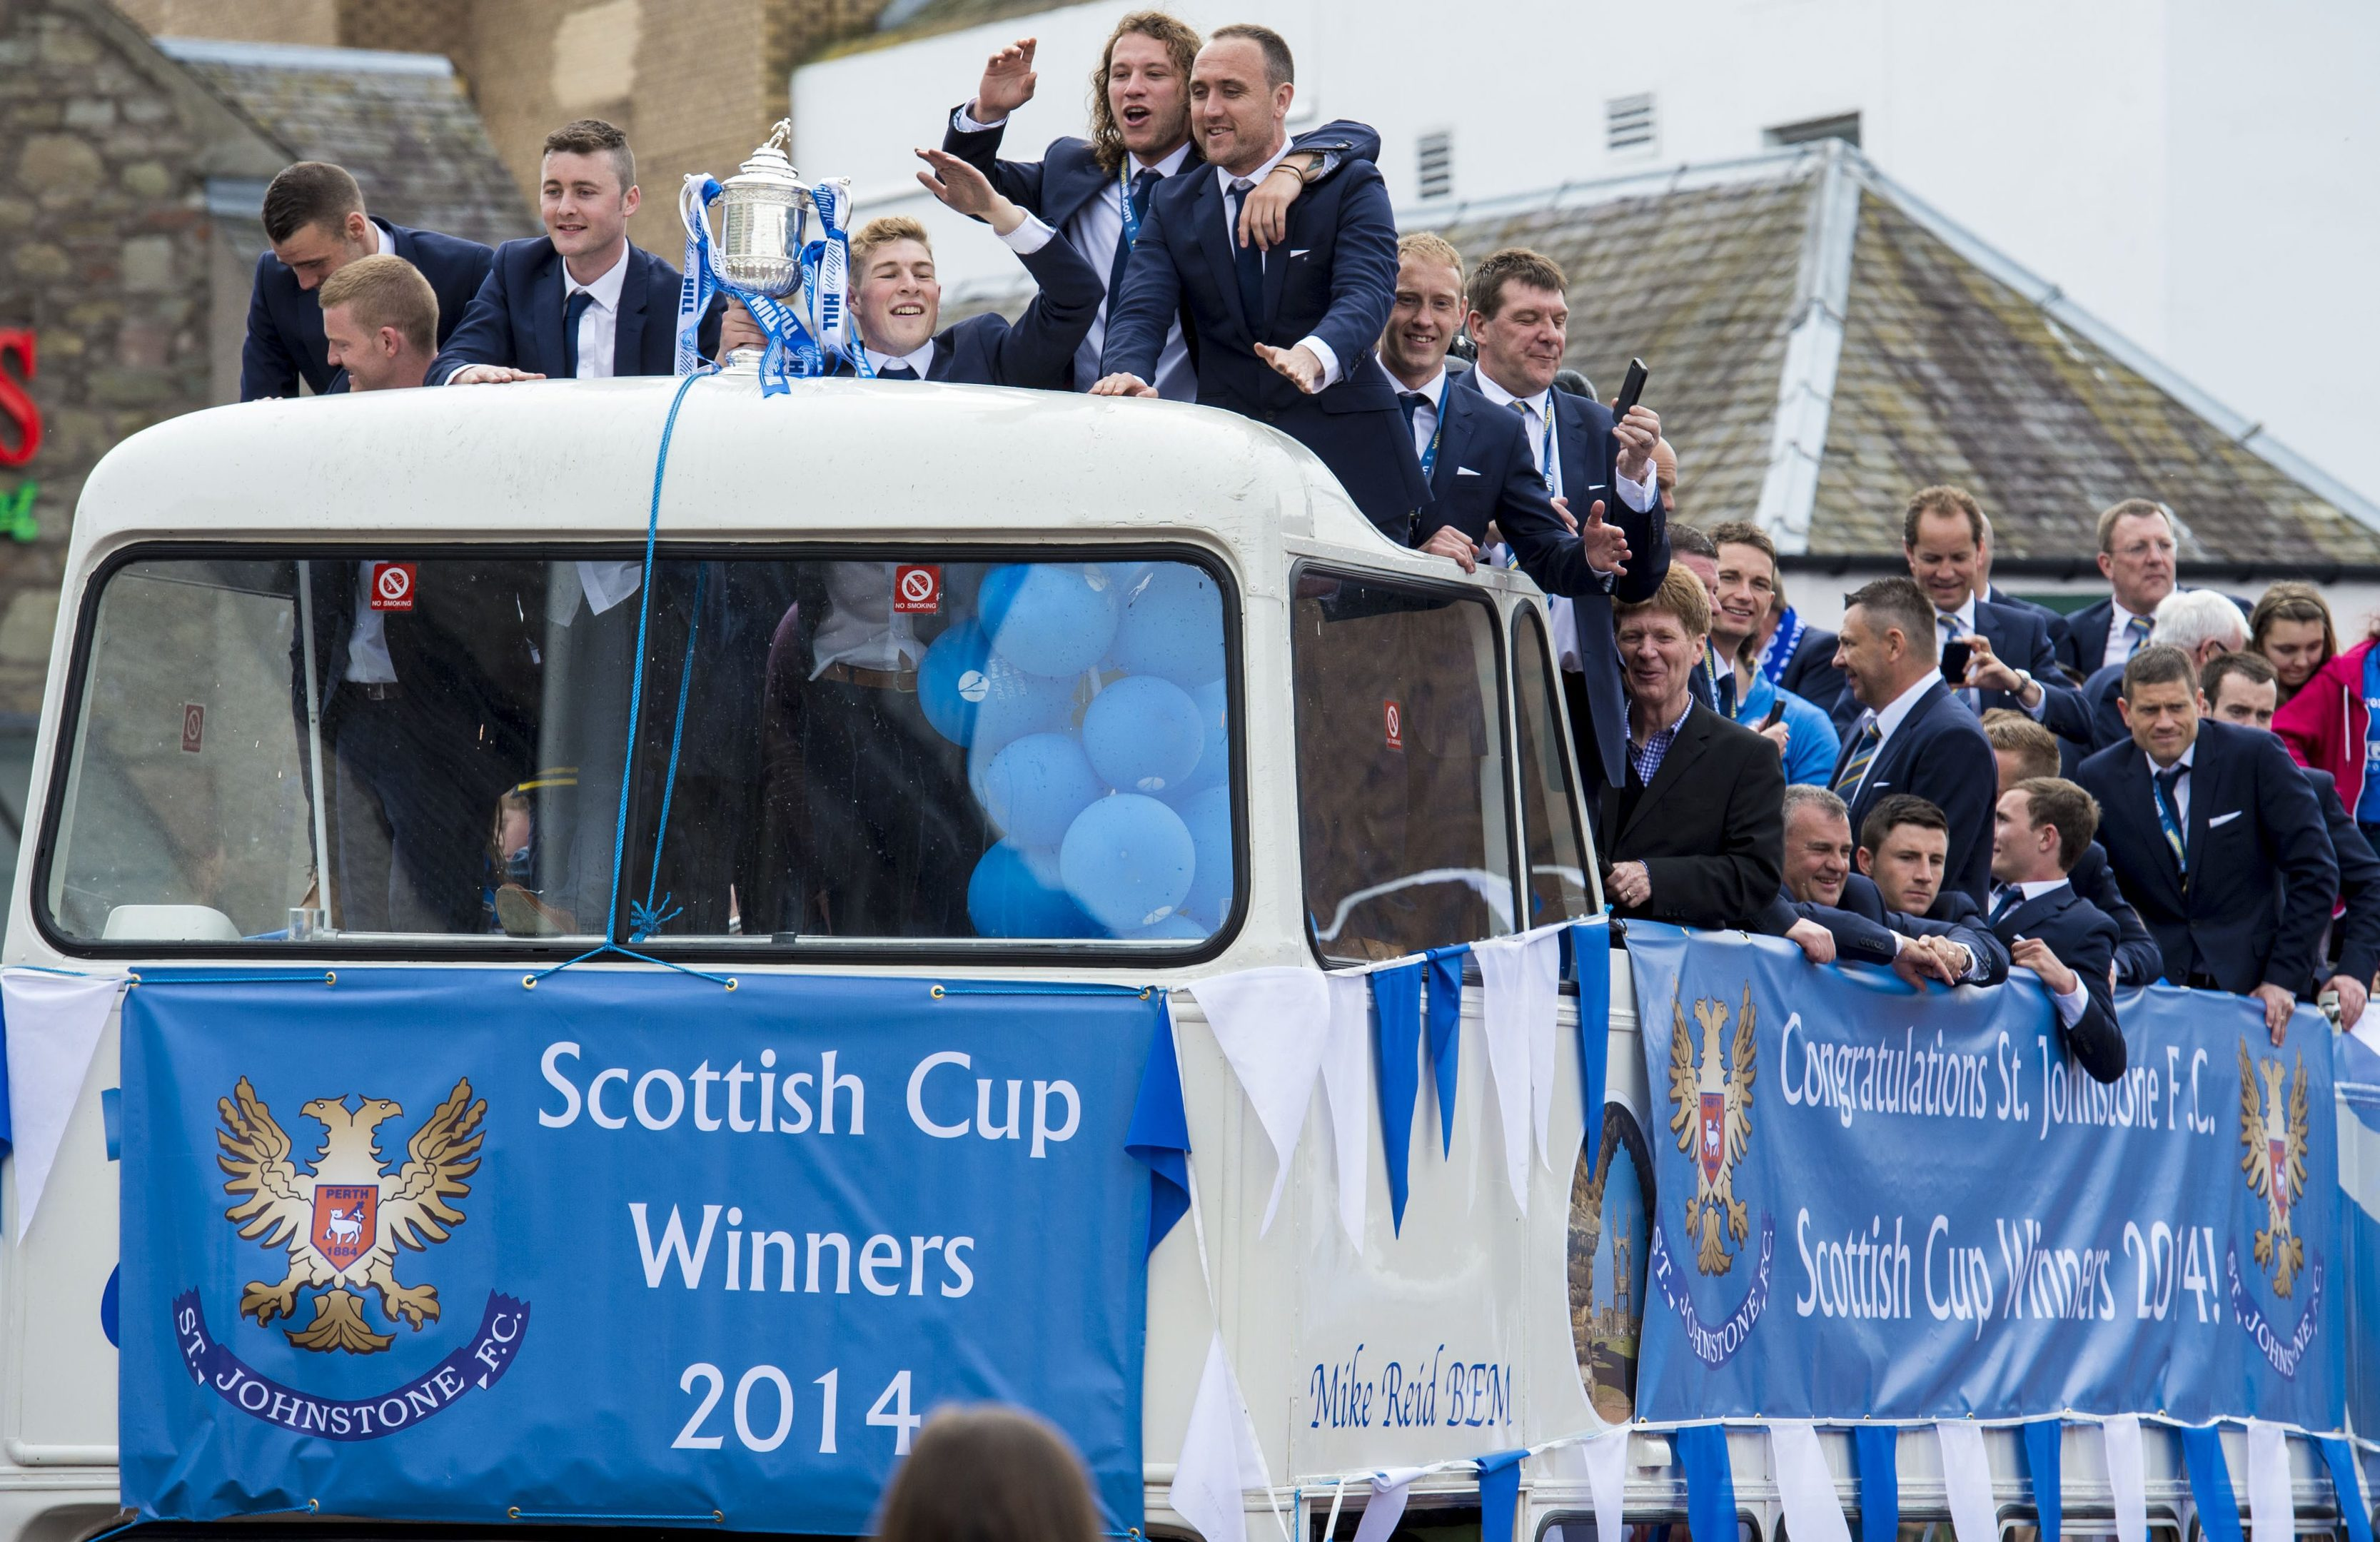 Jim can be spotted on the St Johnstone open-top bus in 2014.